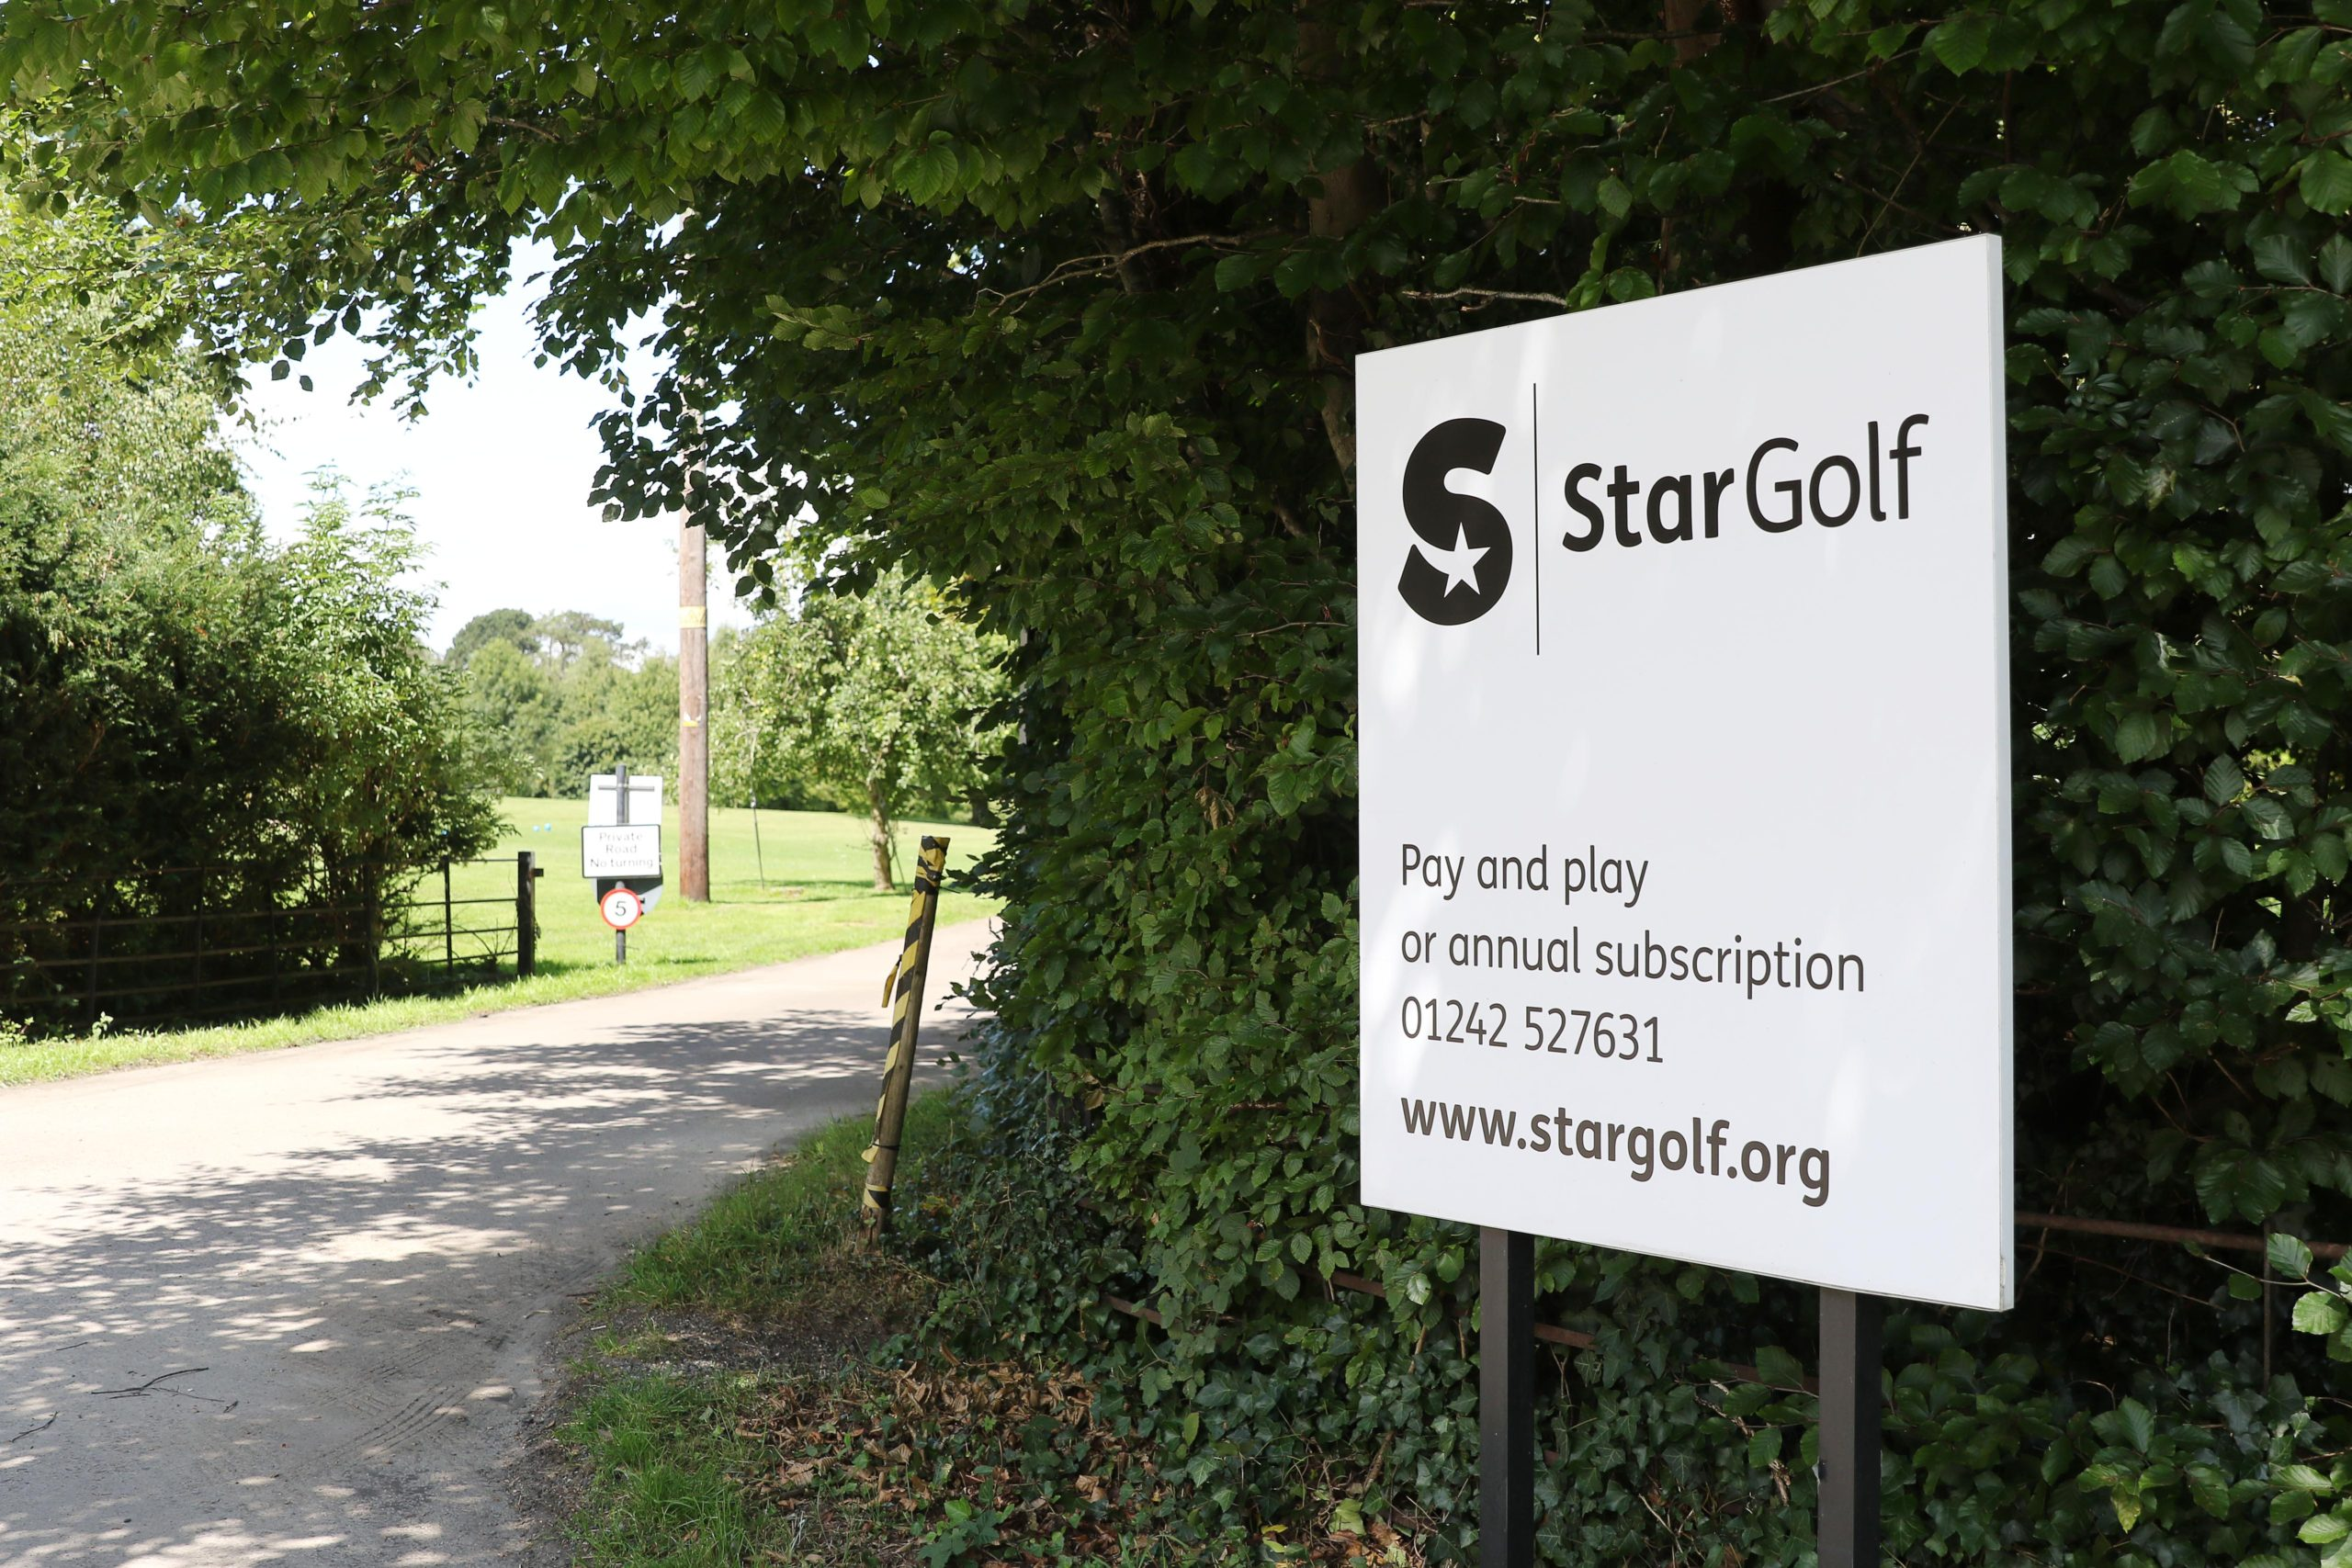 StarGolf sign that is visible from the A436